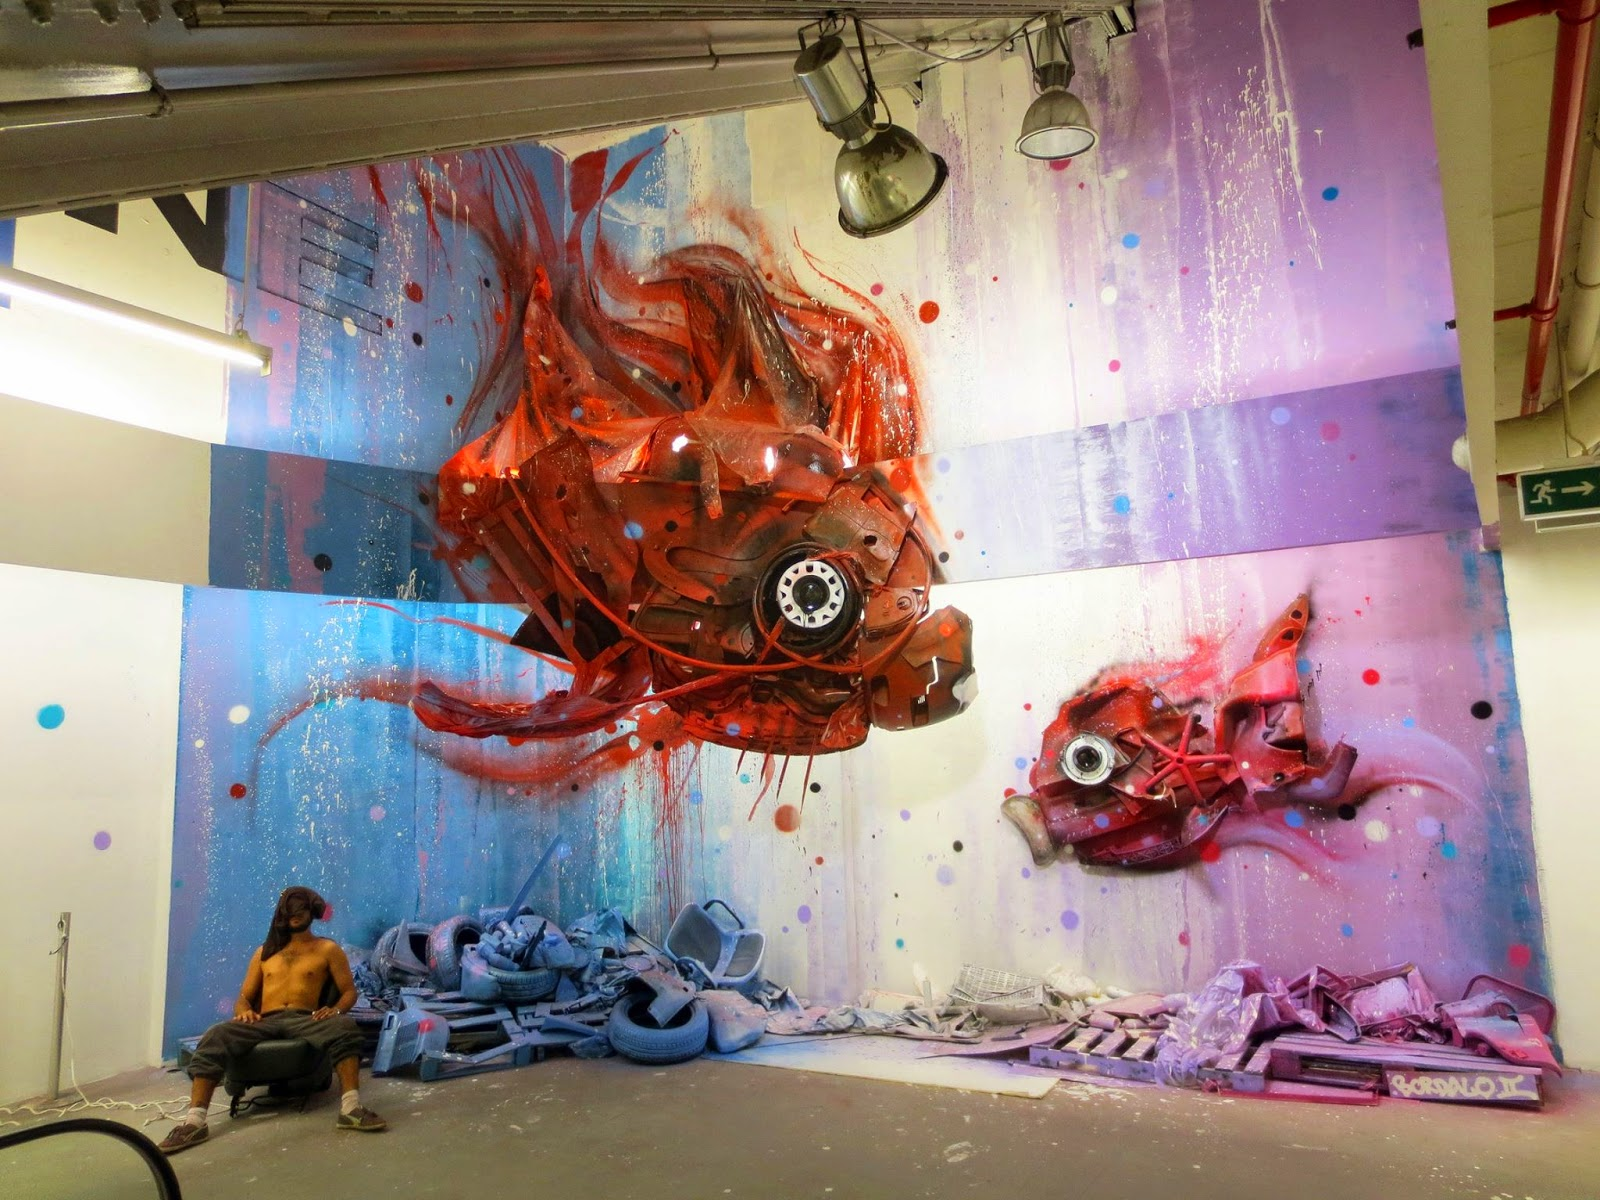 Bordalo II just finished working on another surreal indoor installation somewhere in his hometown of  Lisbon, Portugal.